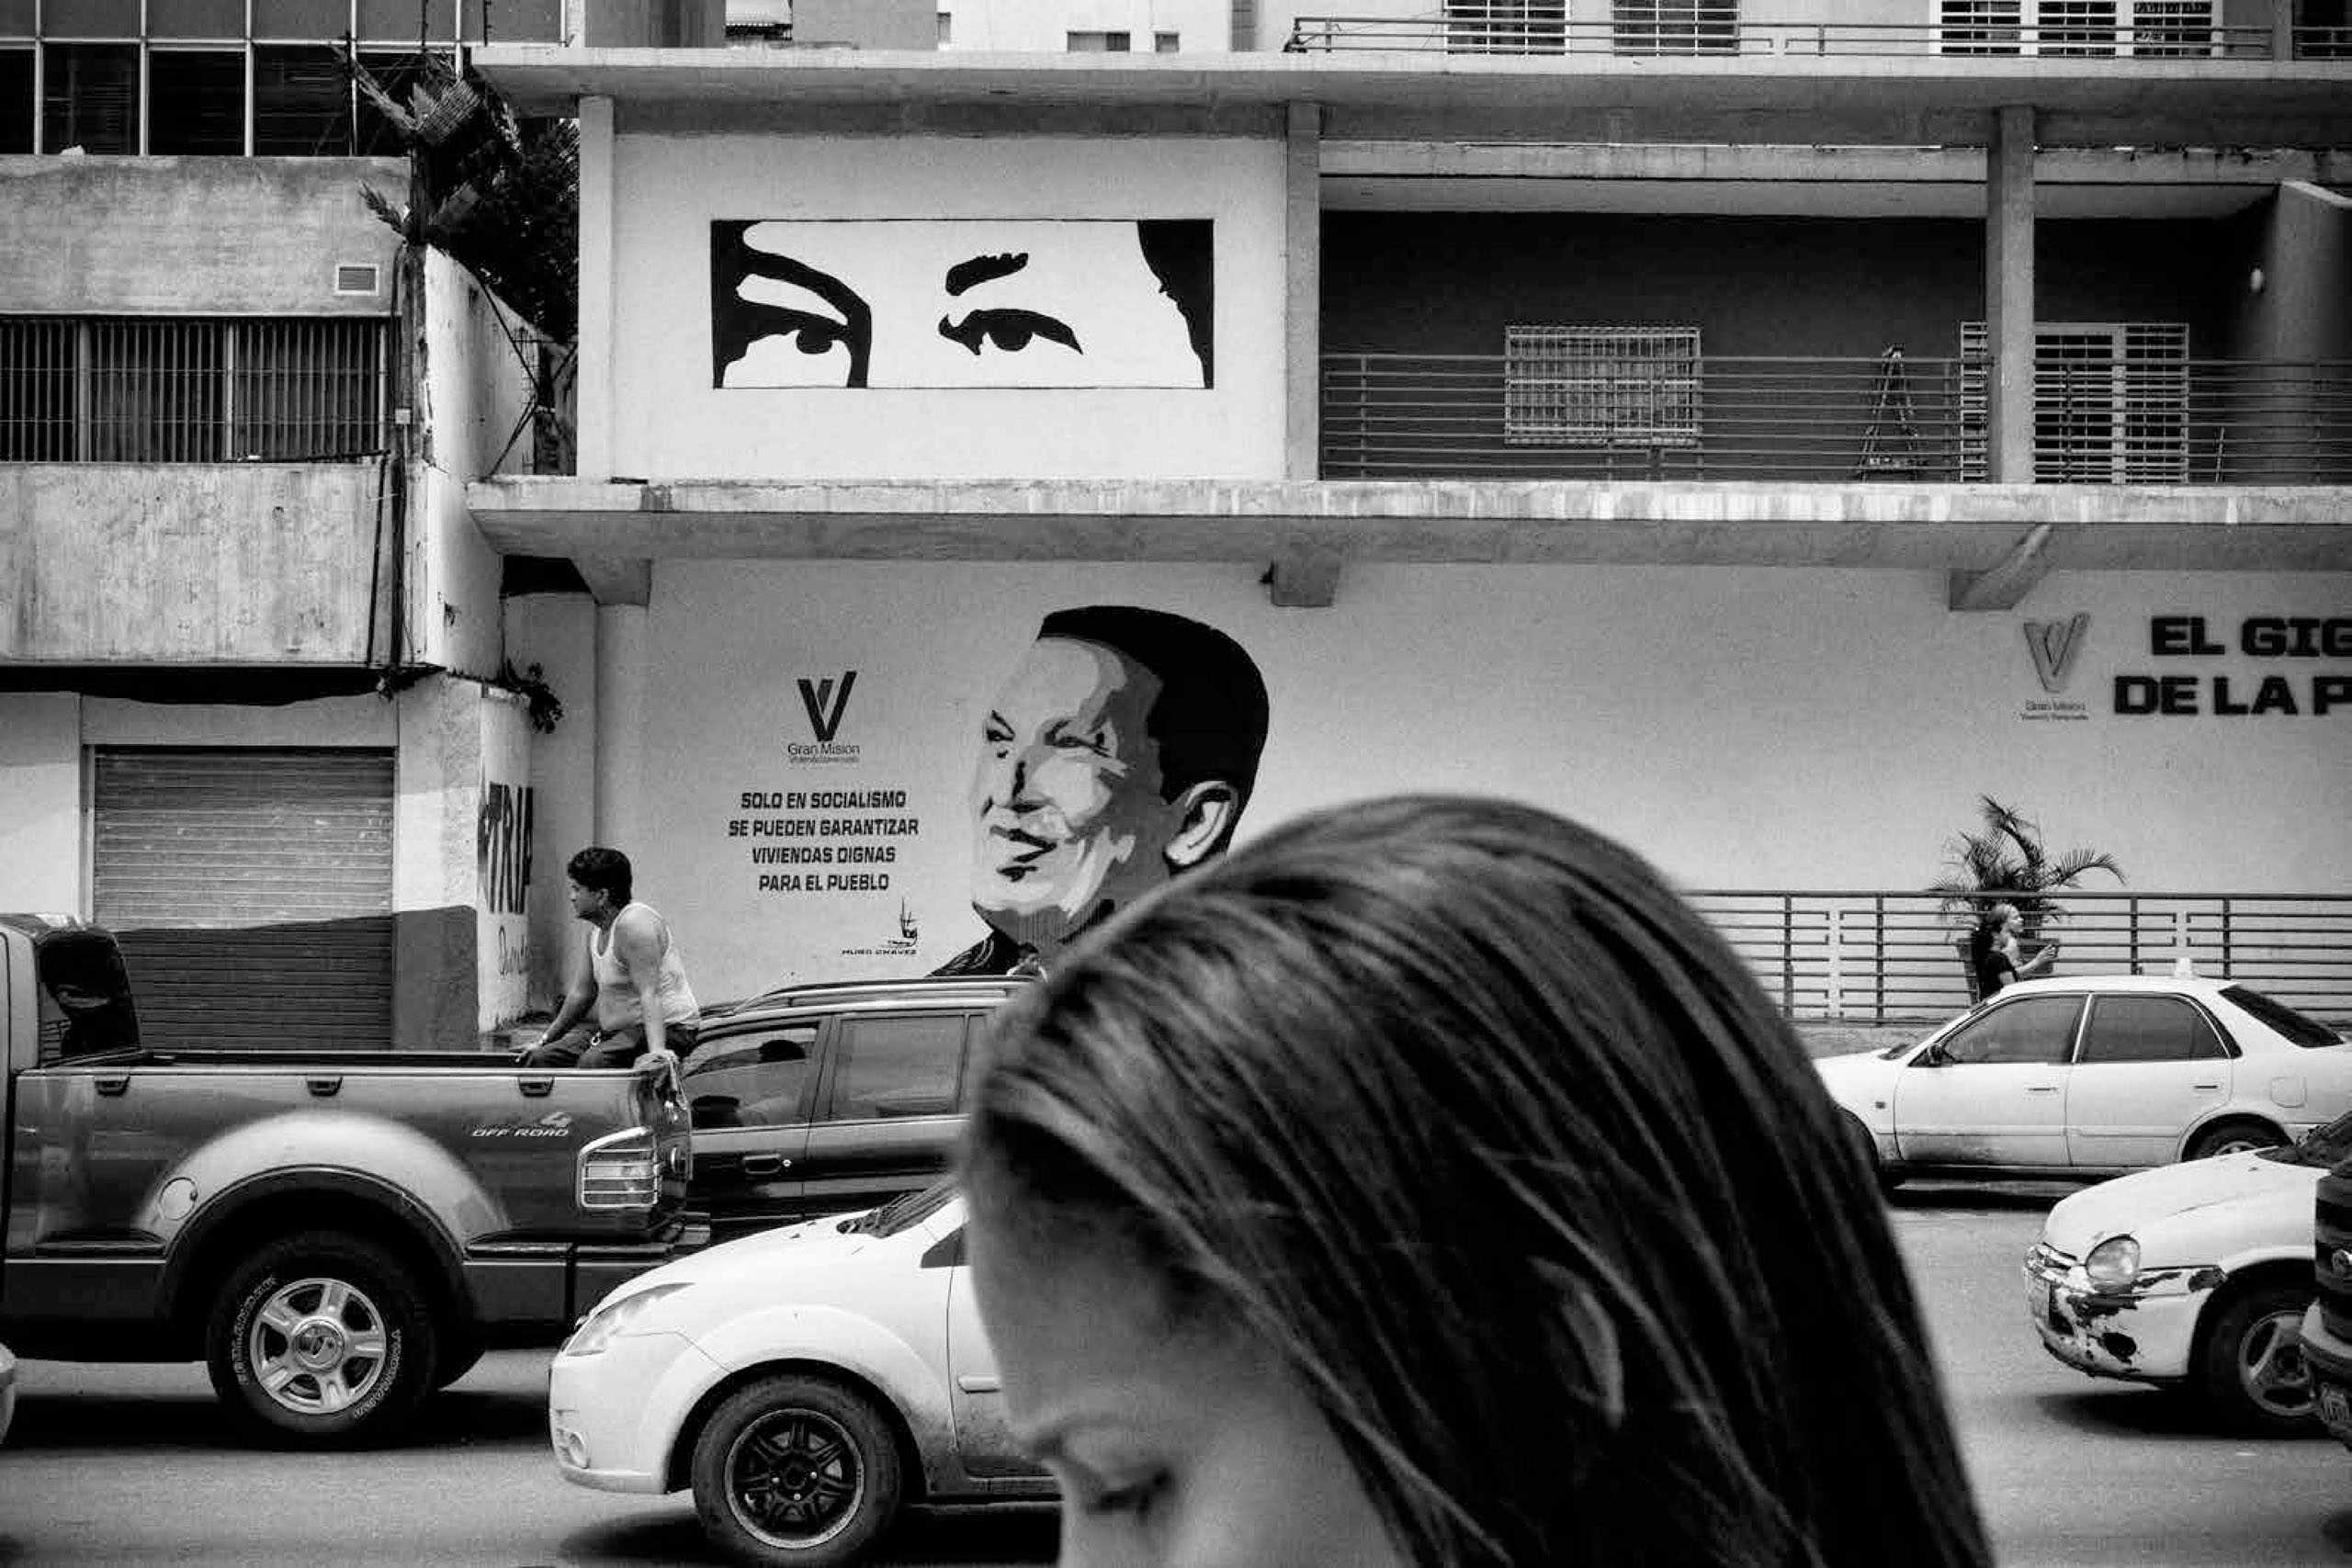 Images of former President Hugo Chavez are still pervasive around Venezuela, along with anti-imperialist and revolutionary propaganda graffiti. For the Venezuelan government, the personality cult surrounding the Bolivarian leader helps keep the spirit of the revolution alive, Caracas, July 2015.